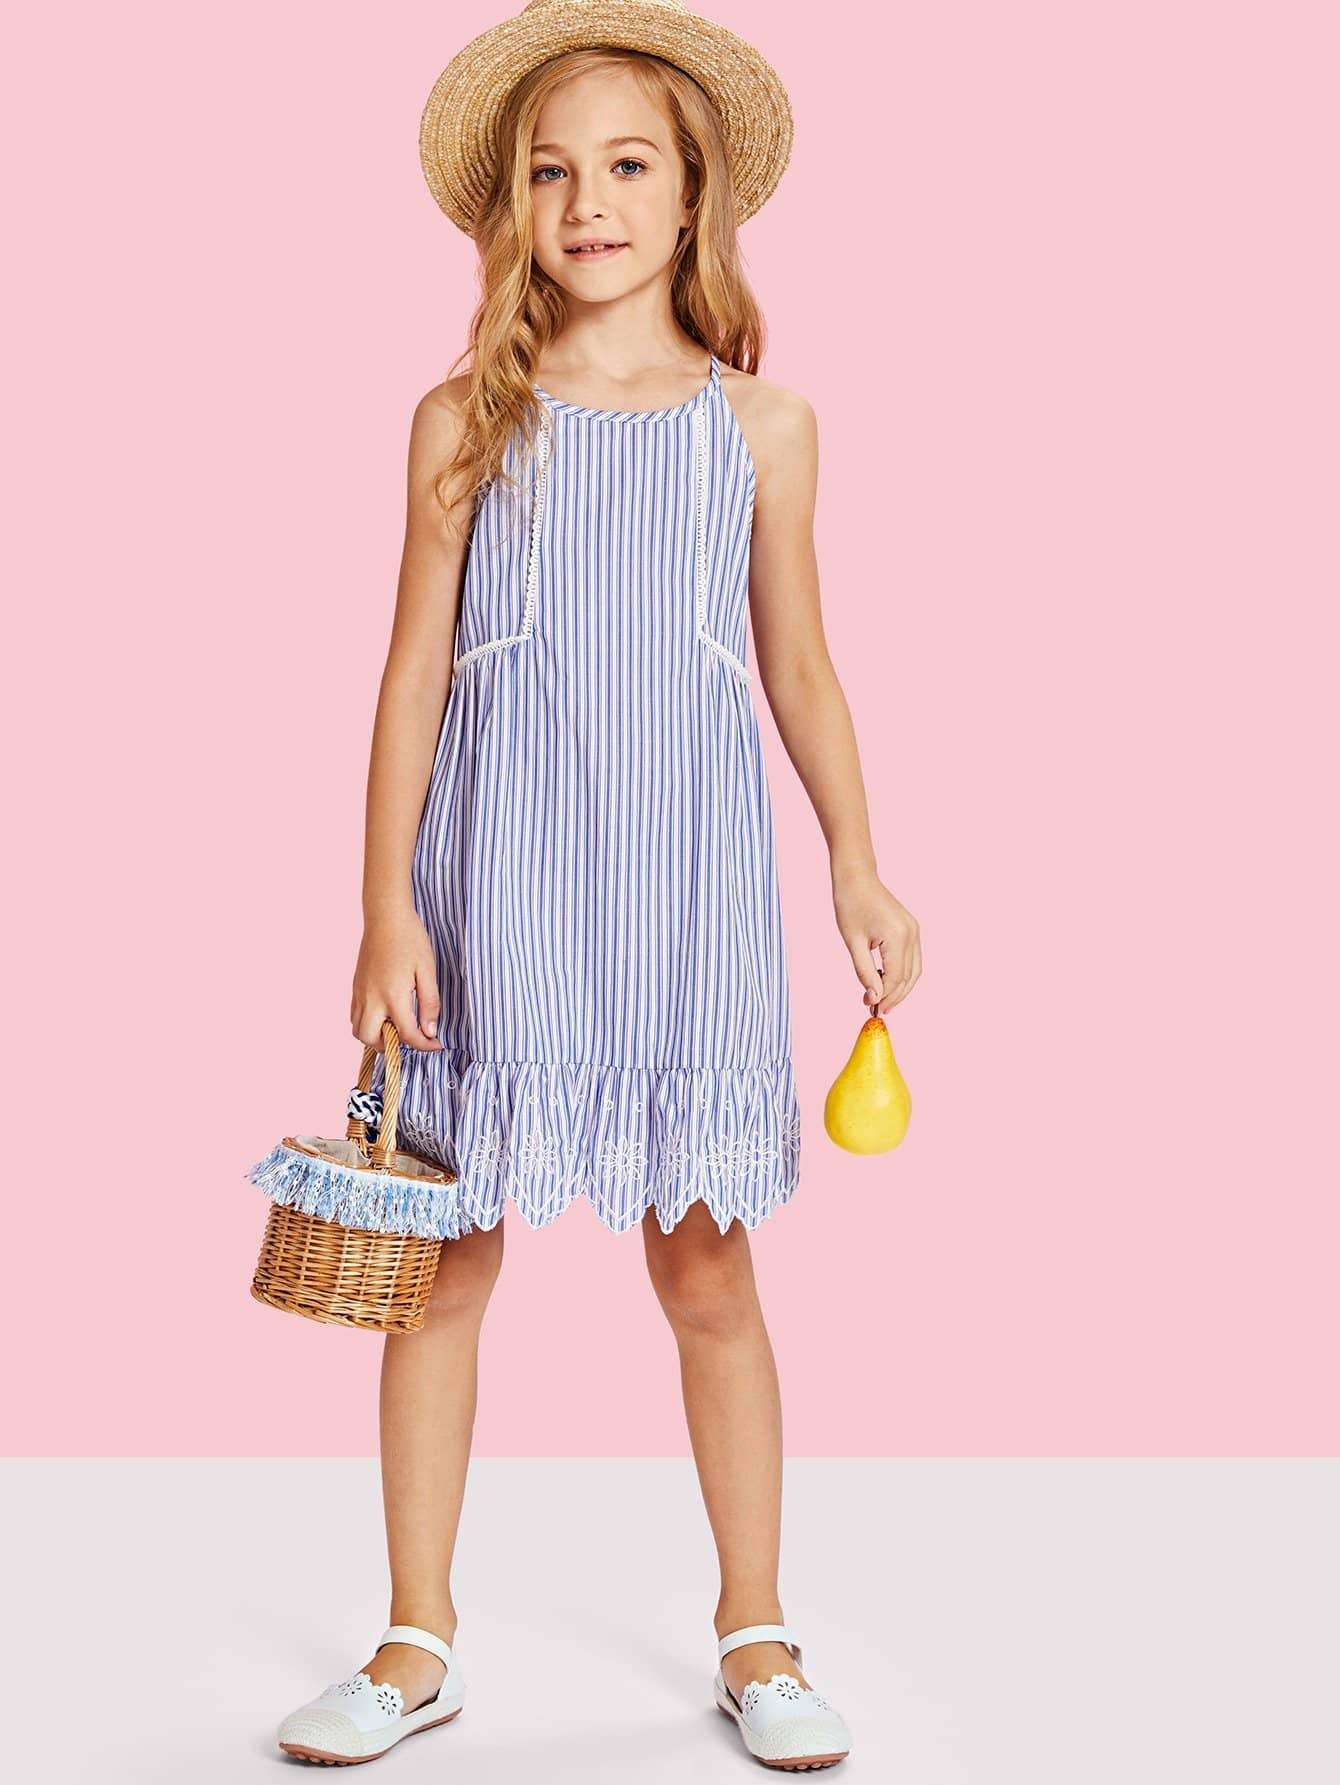 Lace Trim Embroidered Ruffle Hem Striped Dress ruffle waist zip back scallop hem embroidered gingham skirt